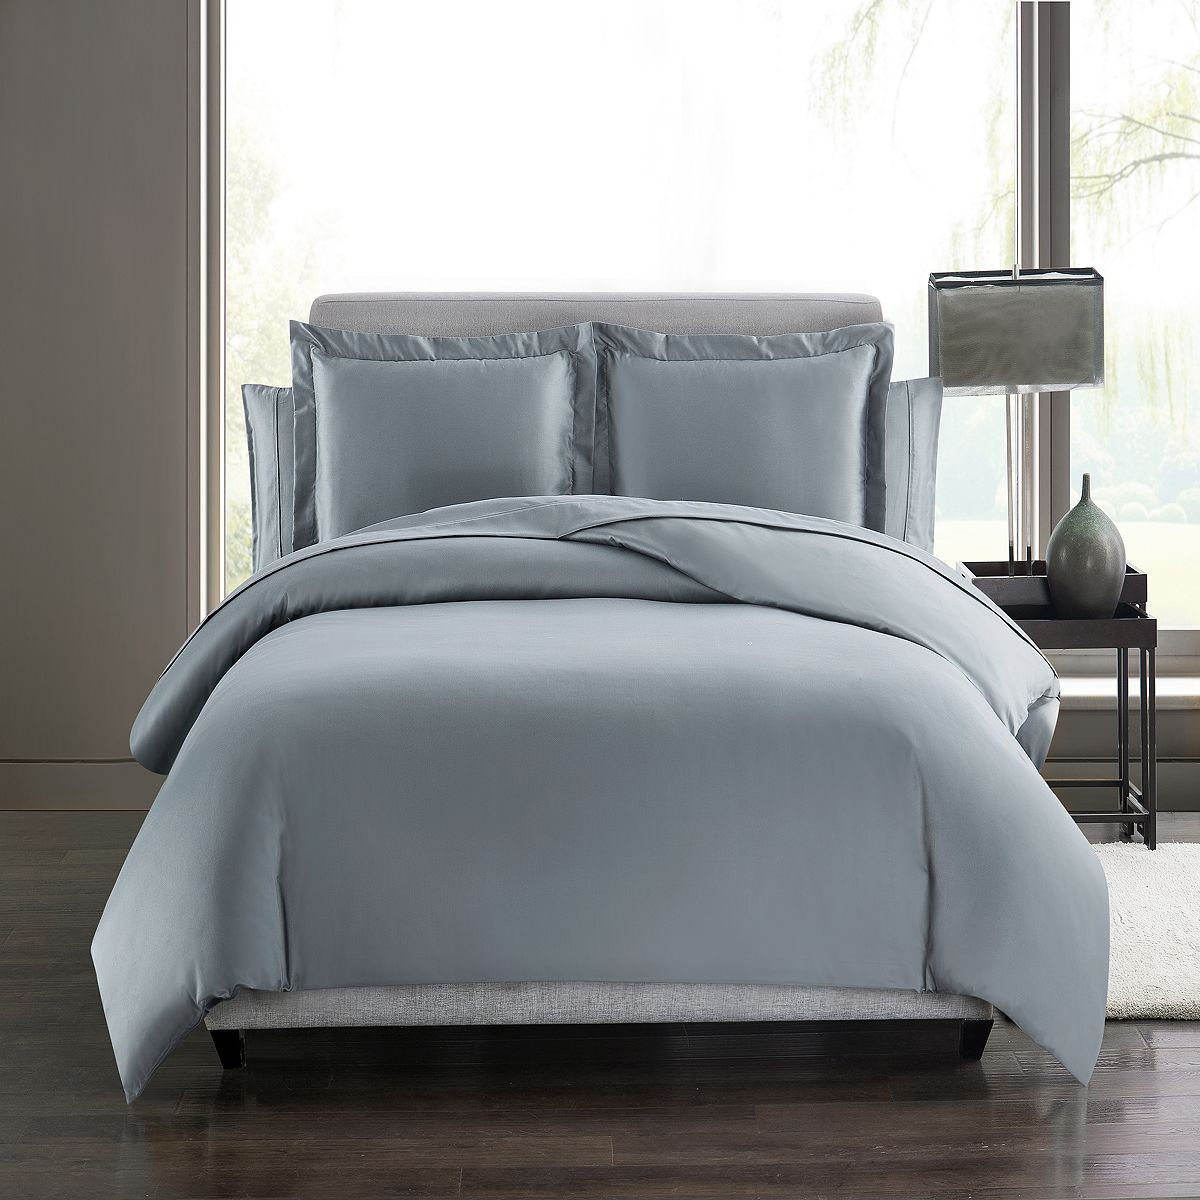 Highline Bedding Co. Sullivan Cotton Sateen Solid Duvet Cover Set in Mineral